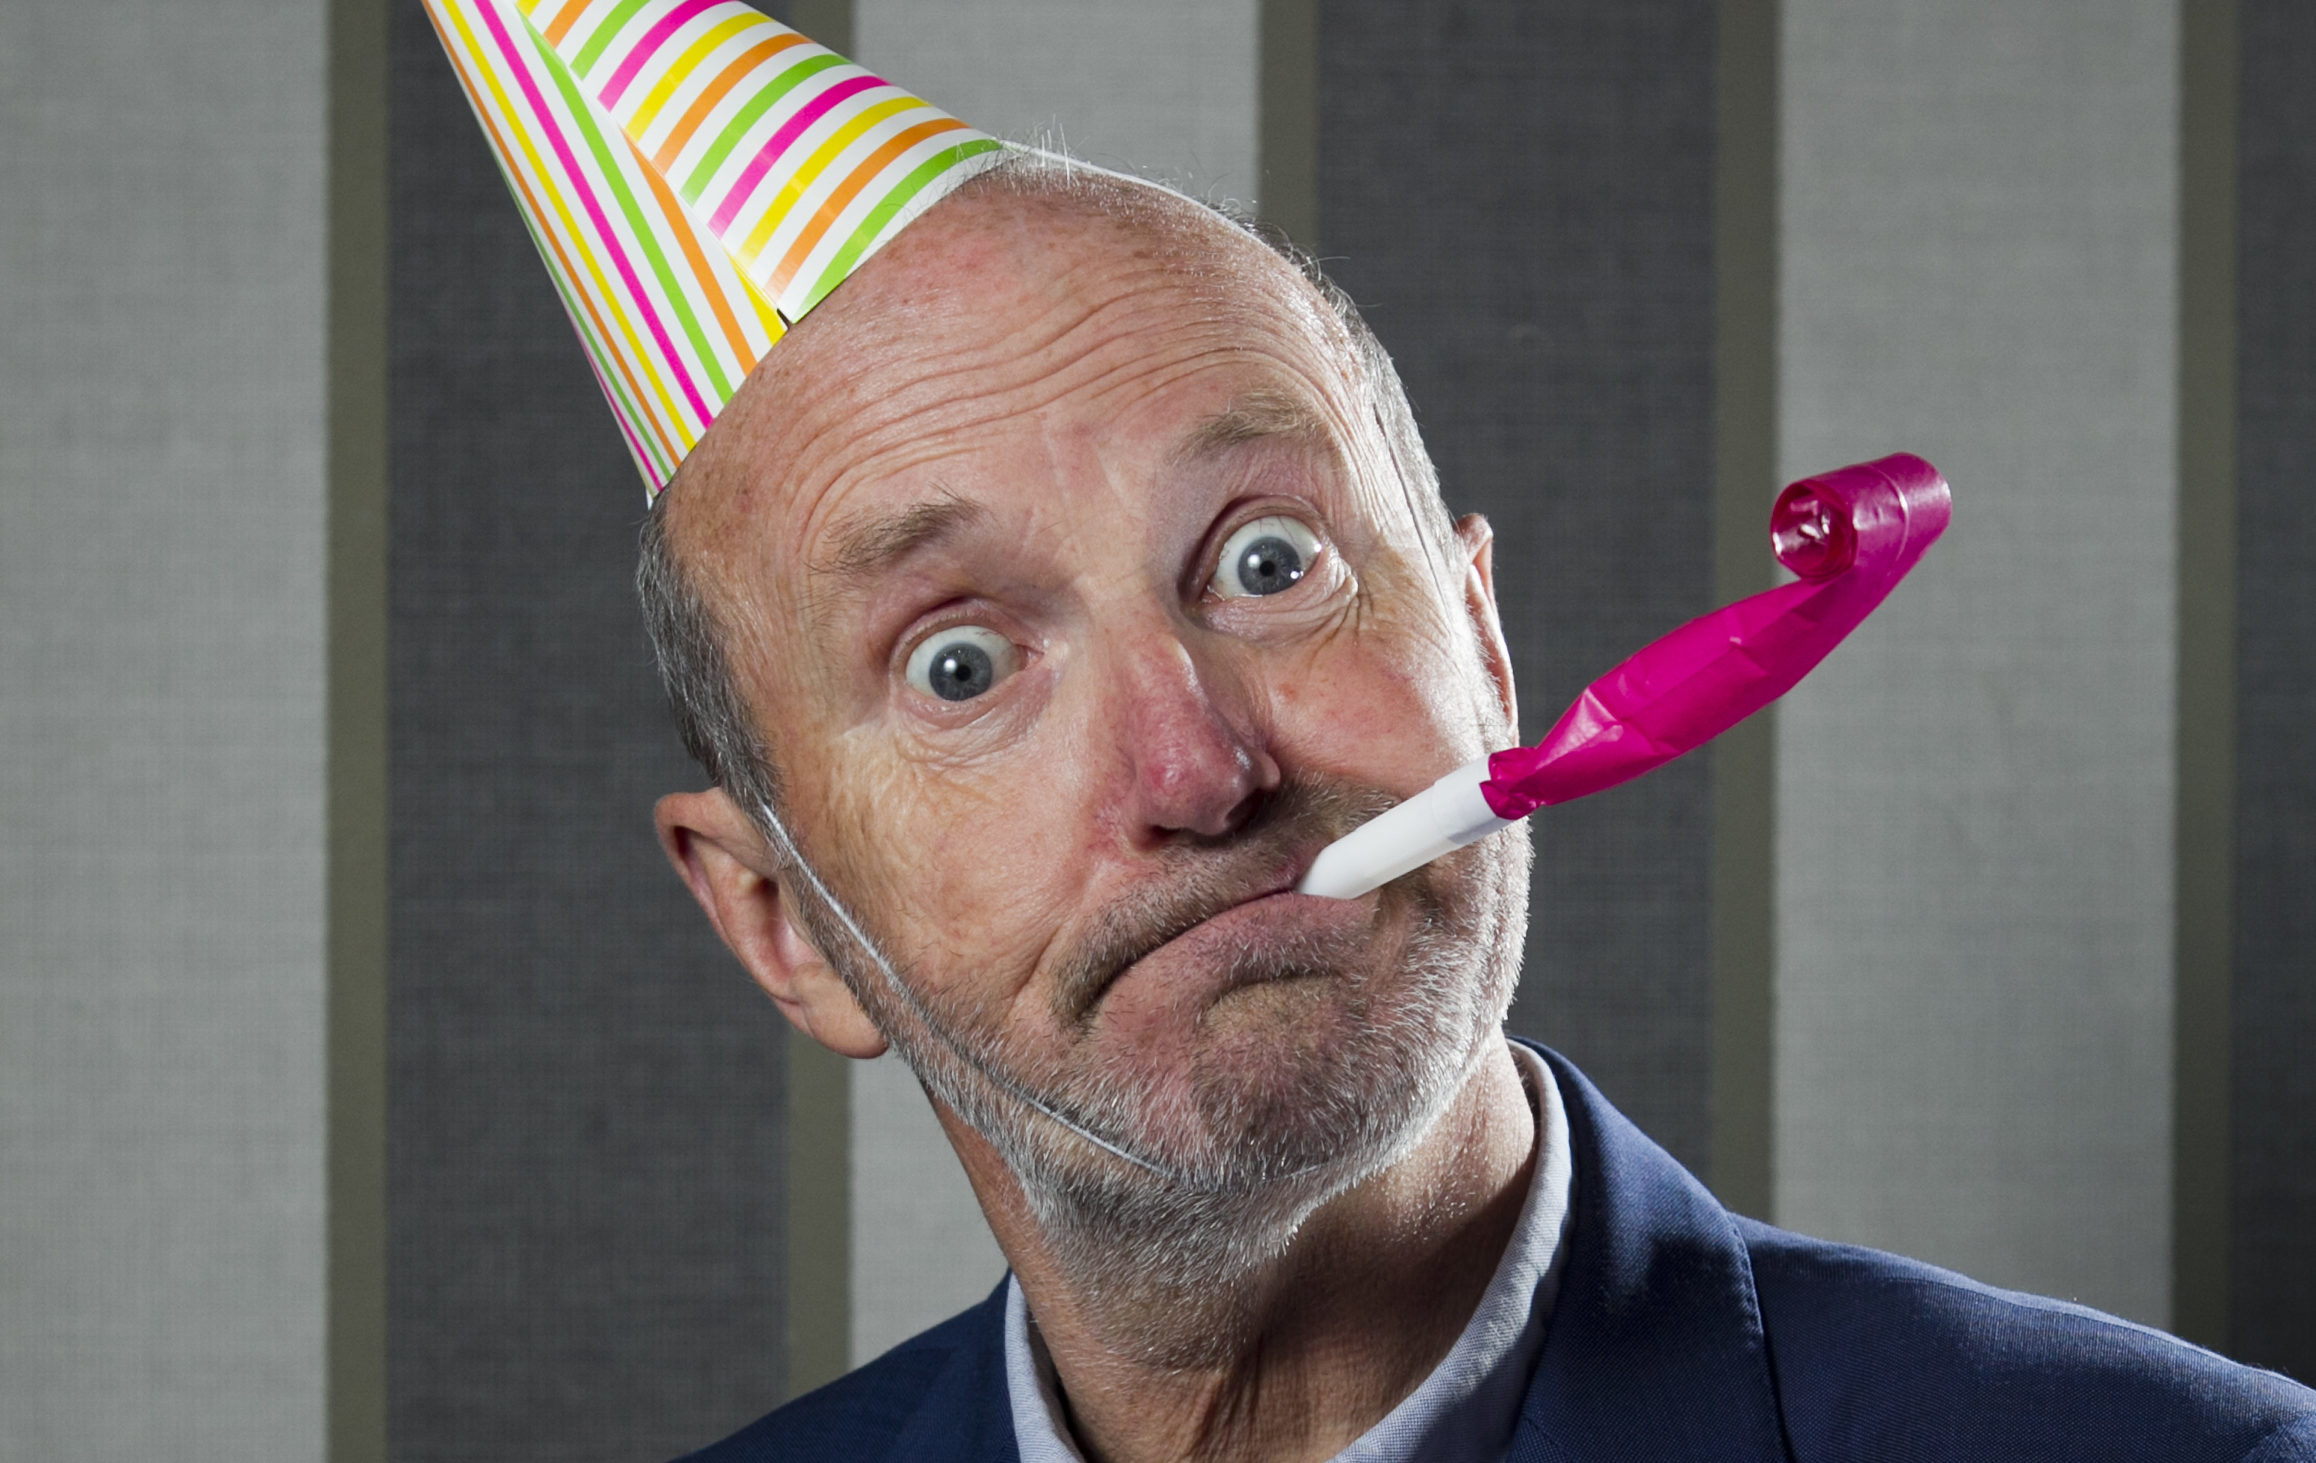 Fred MacAulay is marking 30 years in comedy (Andrew Cawley / DC Thomson)